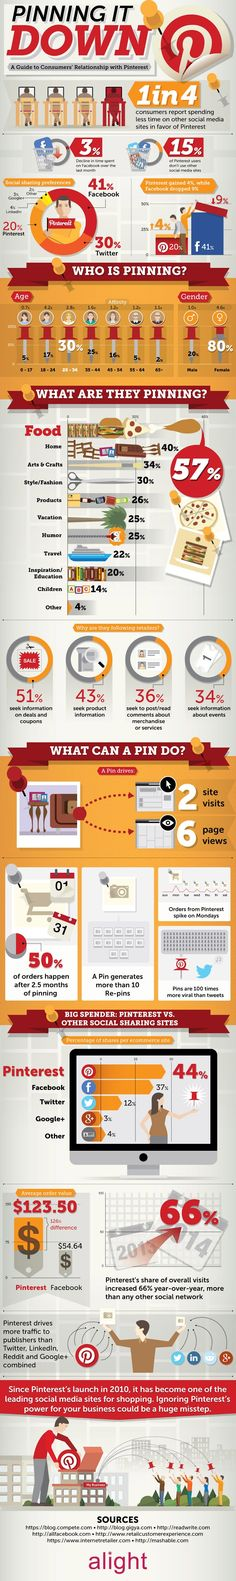 Incorporating Pinterest Into Your Marketing Strategy – infographic